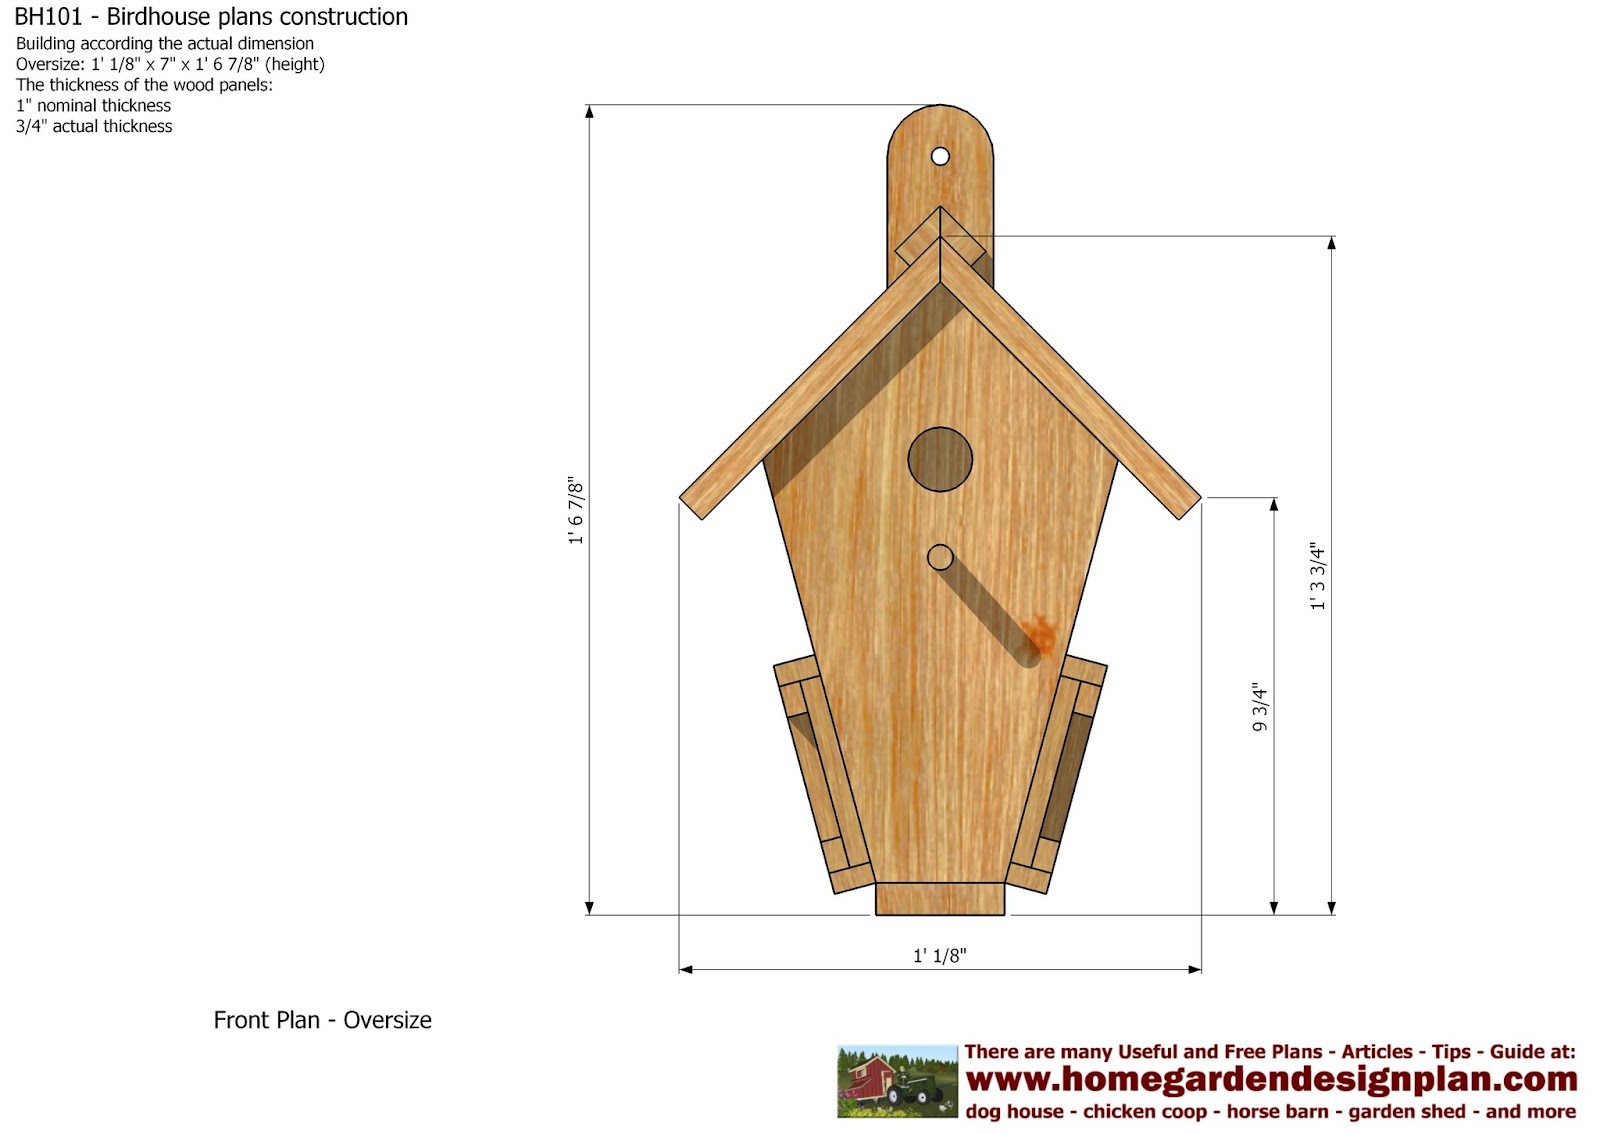 Mina bh101 bird house plans construction bird house for Building a quail house